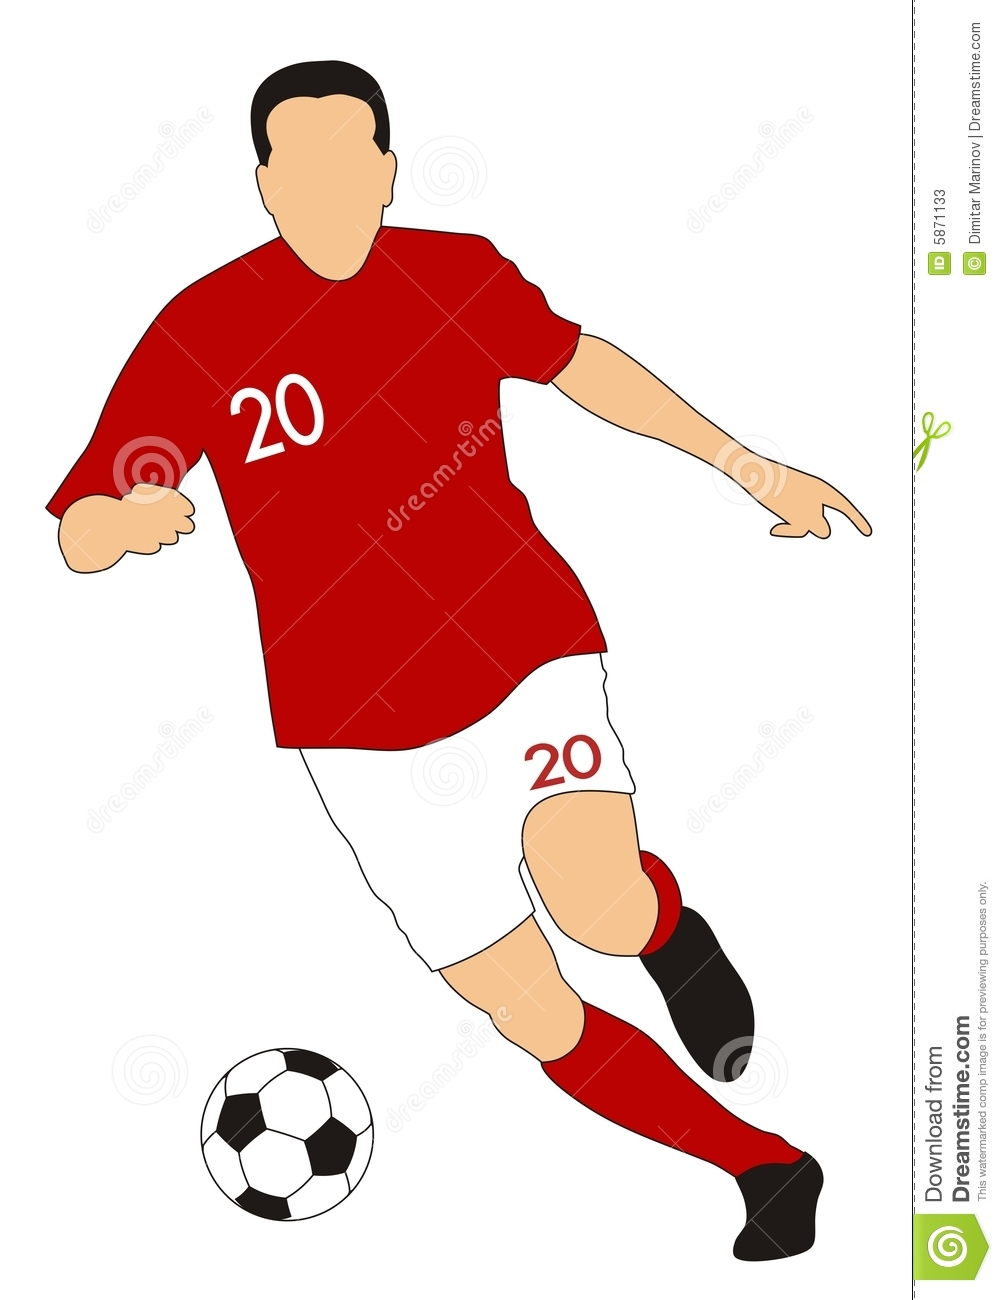 Footballer clipart 20 free Cliparts | Download images on ...